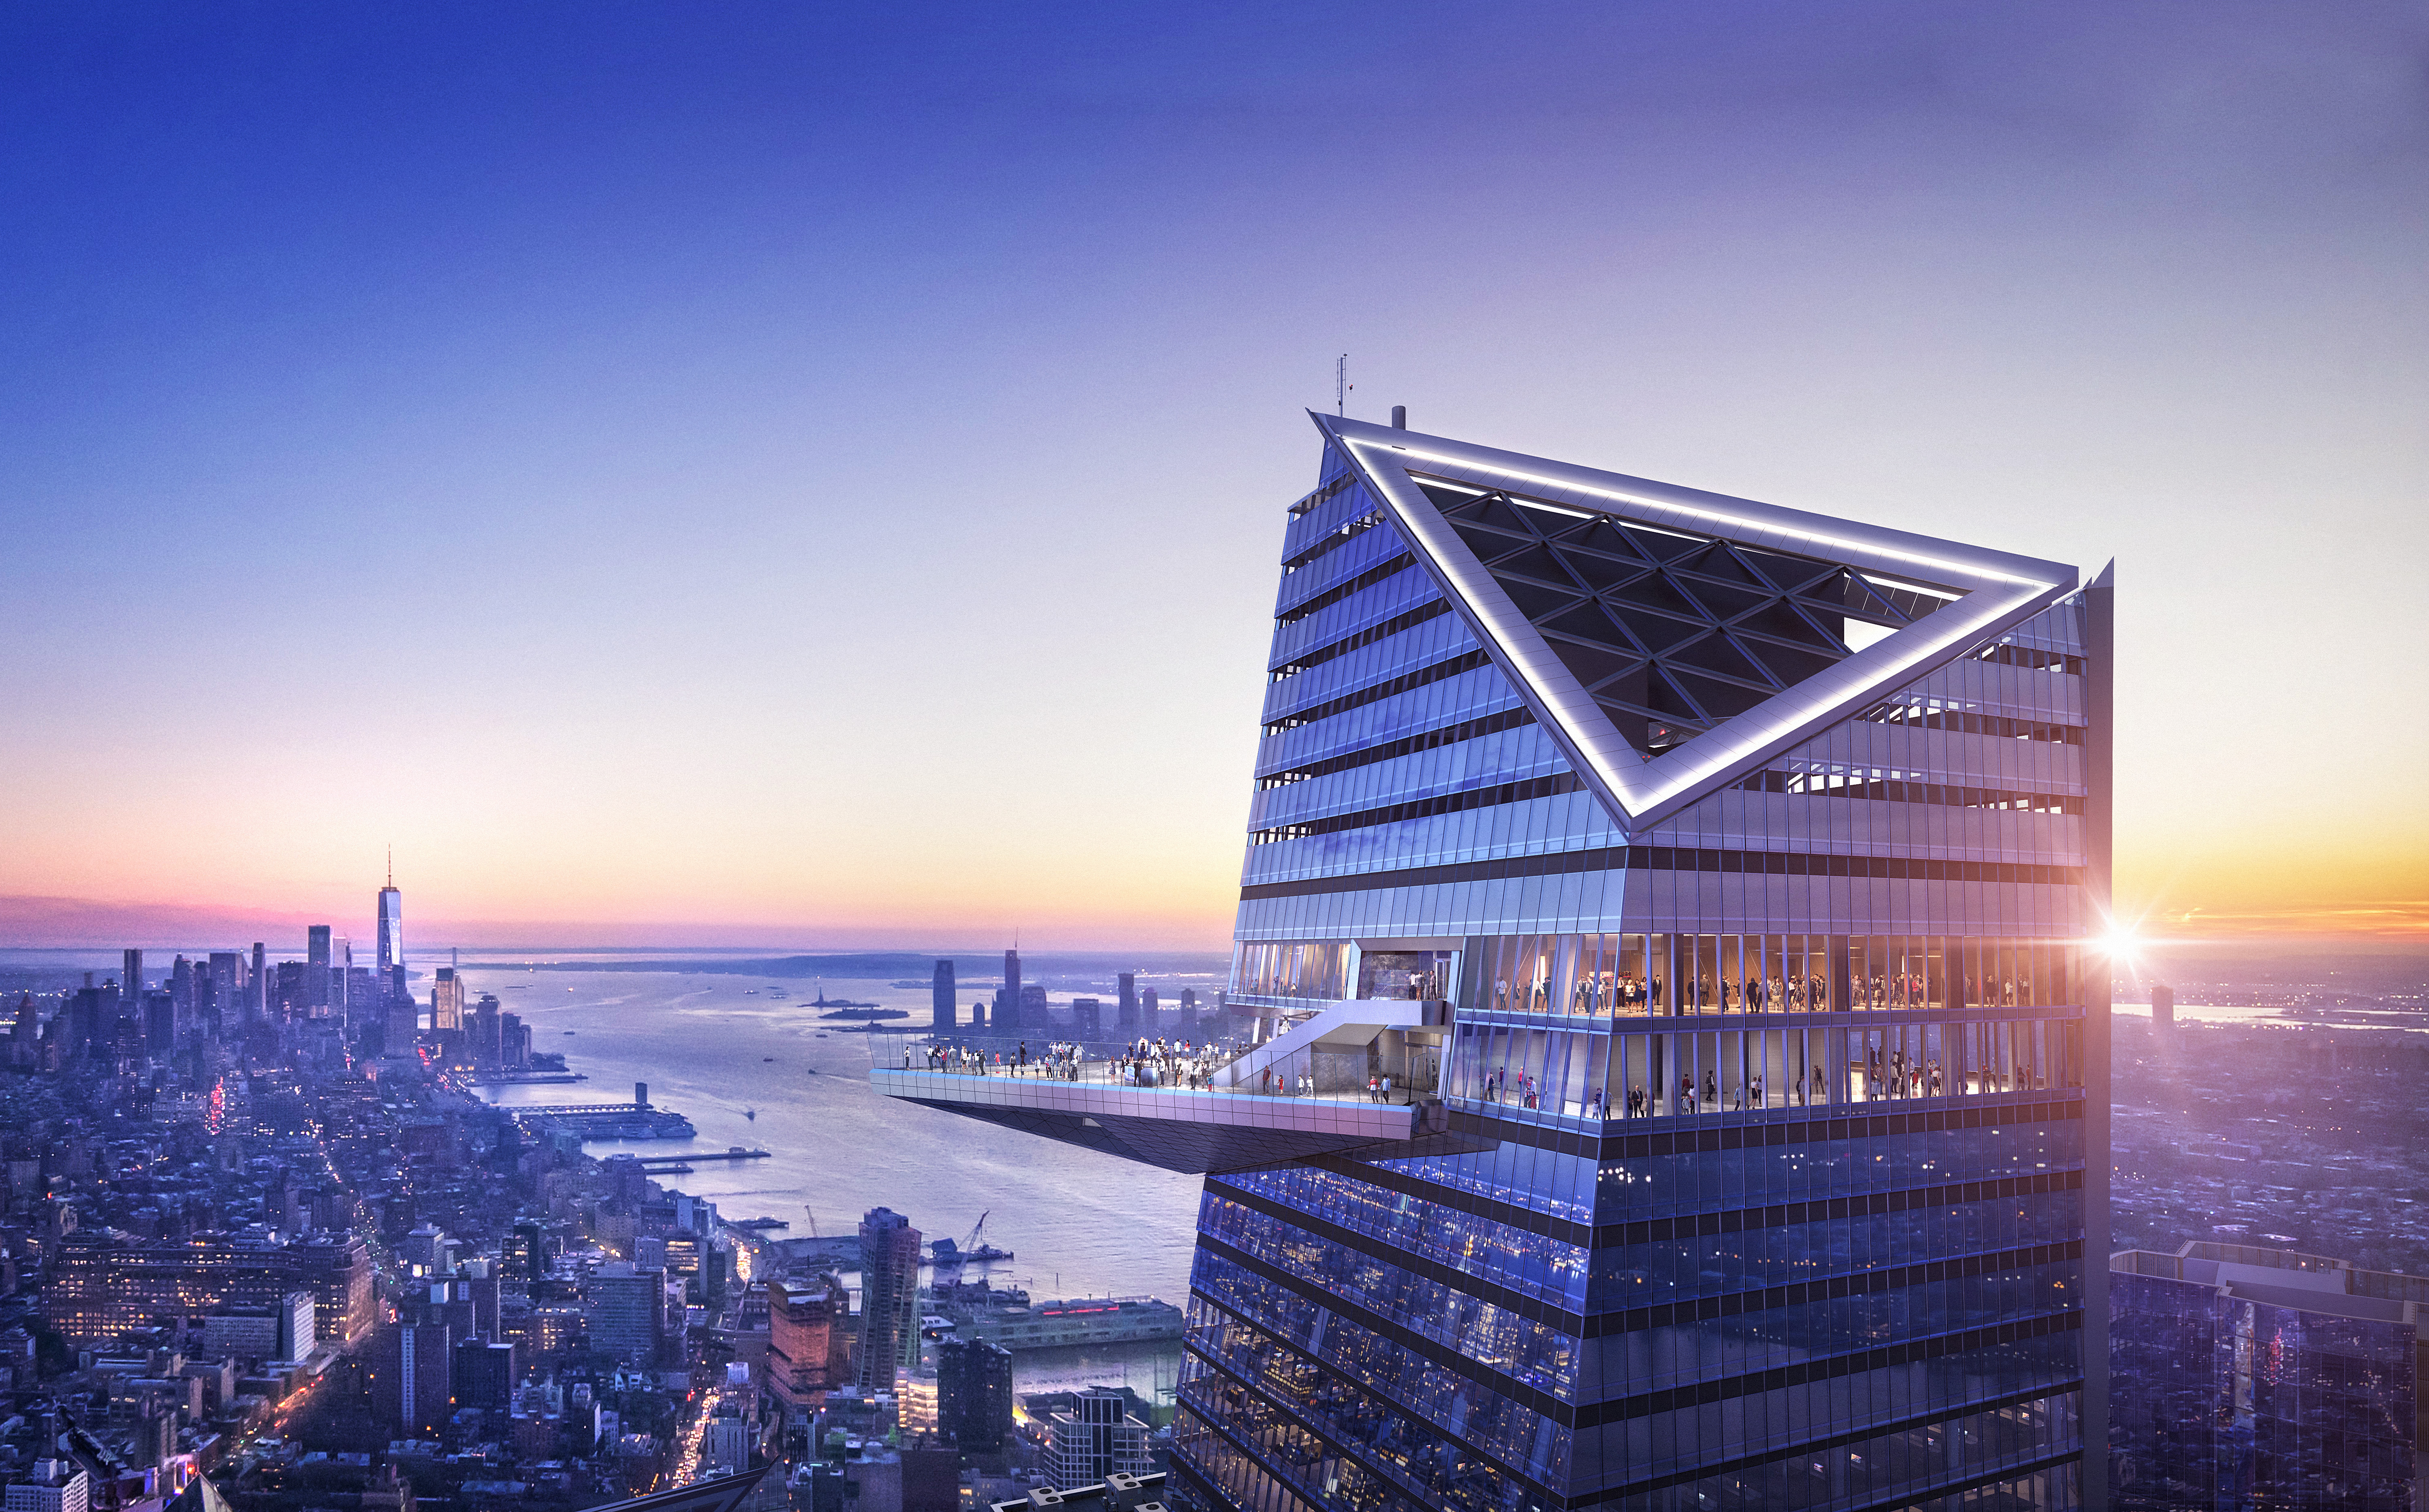 The triangular shaped observation deck at 30 Hudson Yards during the sunset, with views towards the Hudson River and Lower Manhattan.